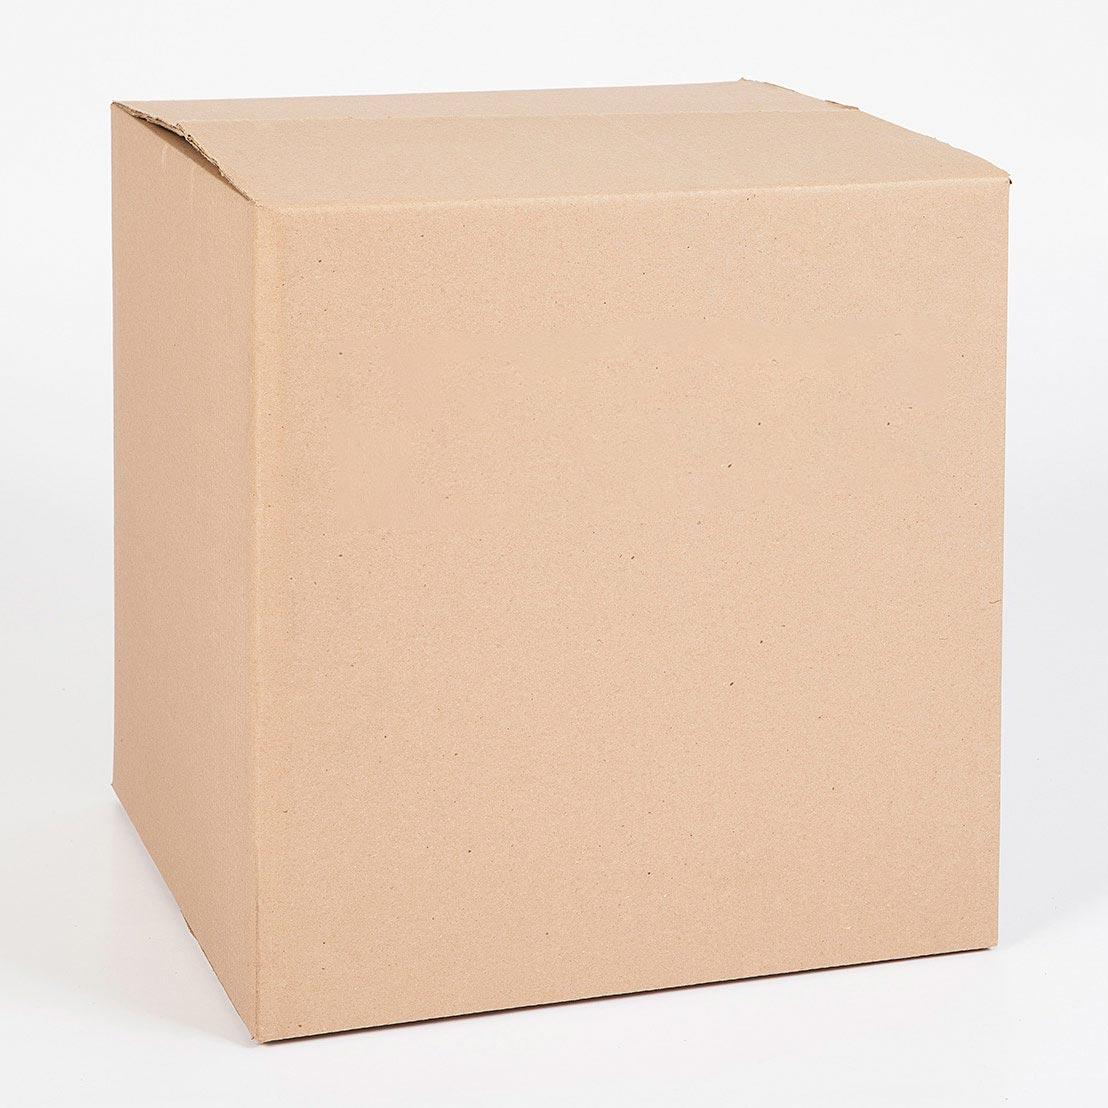 TVL 9 Single Wall Cardboard Box